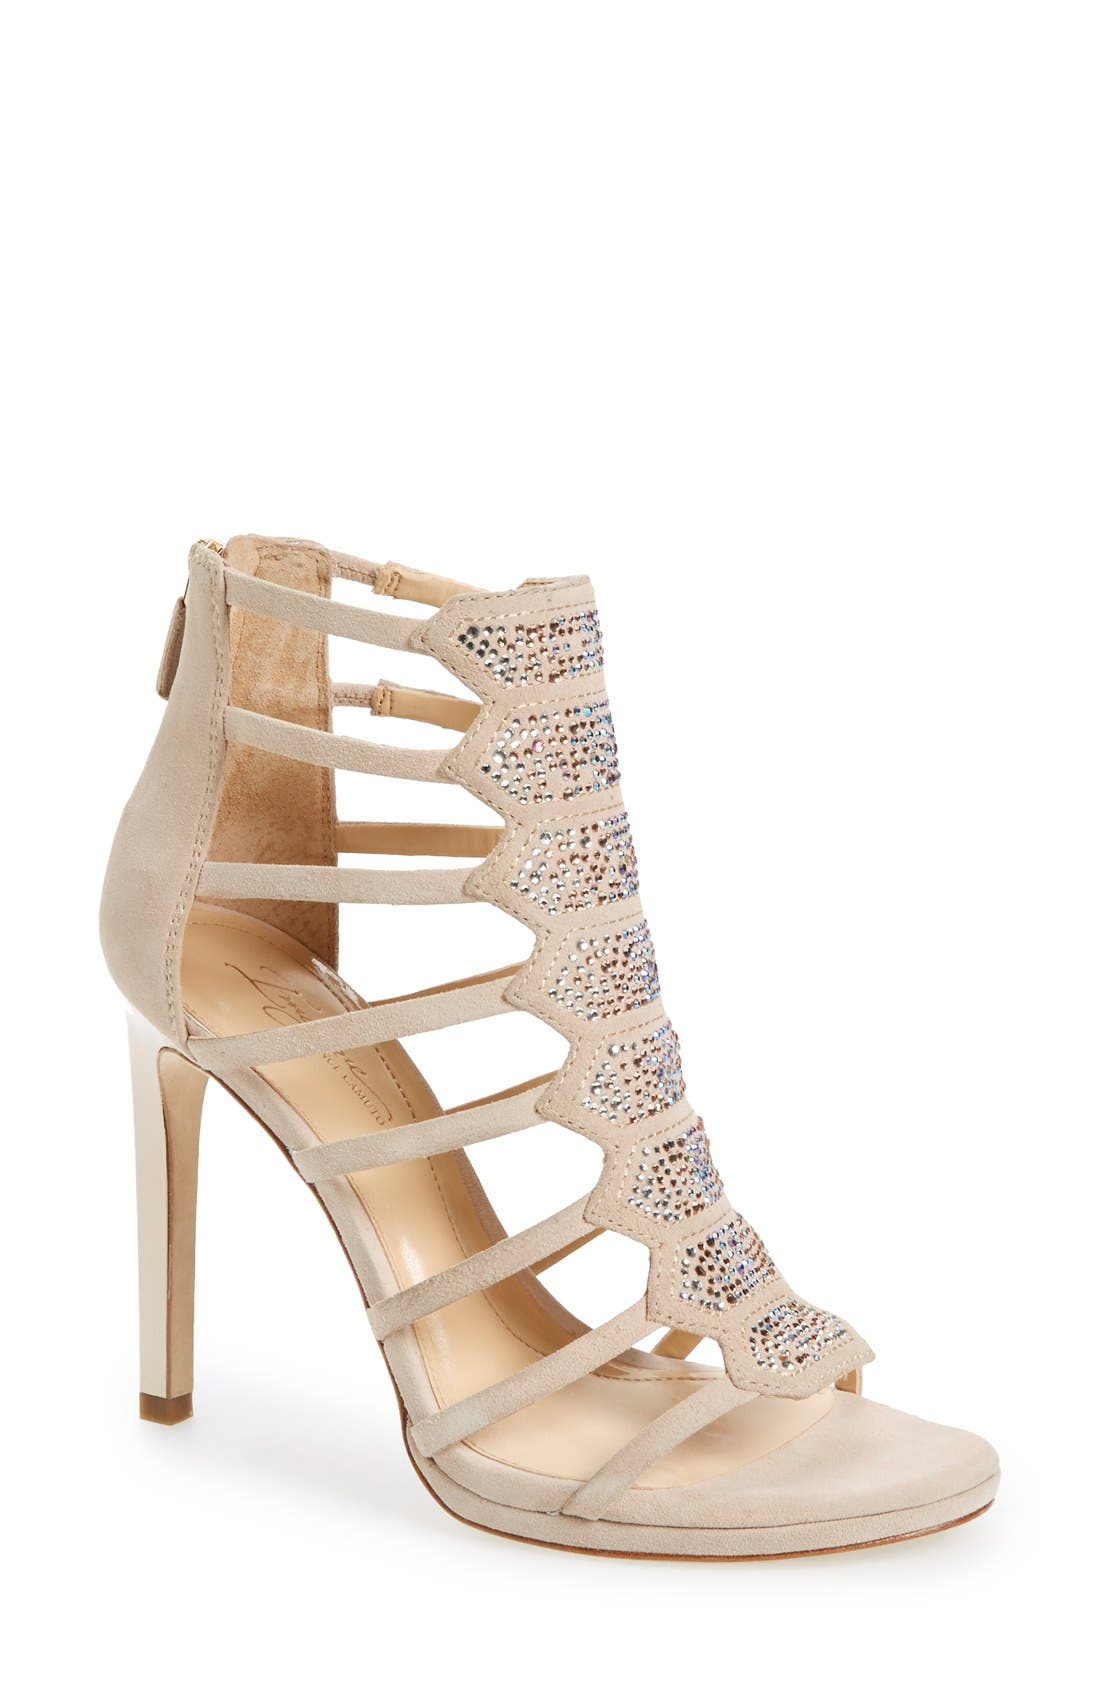 Main Image - Imagine Vince Camuto 'Gavin' Embellished Cage Sandal (Women)